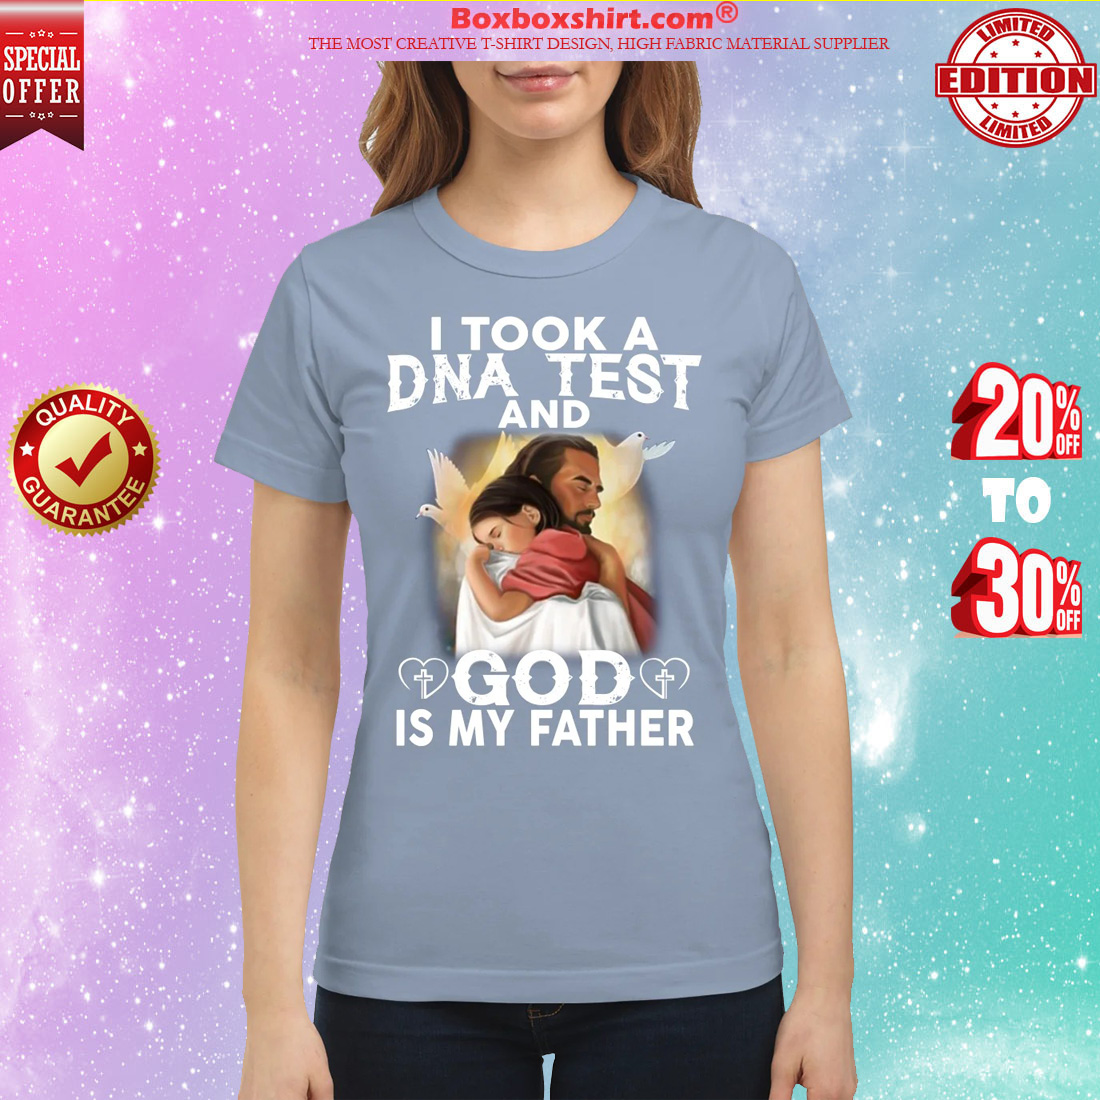 I took a DNA test and God is my father classic shirt